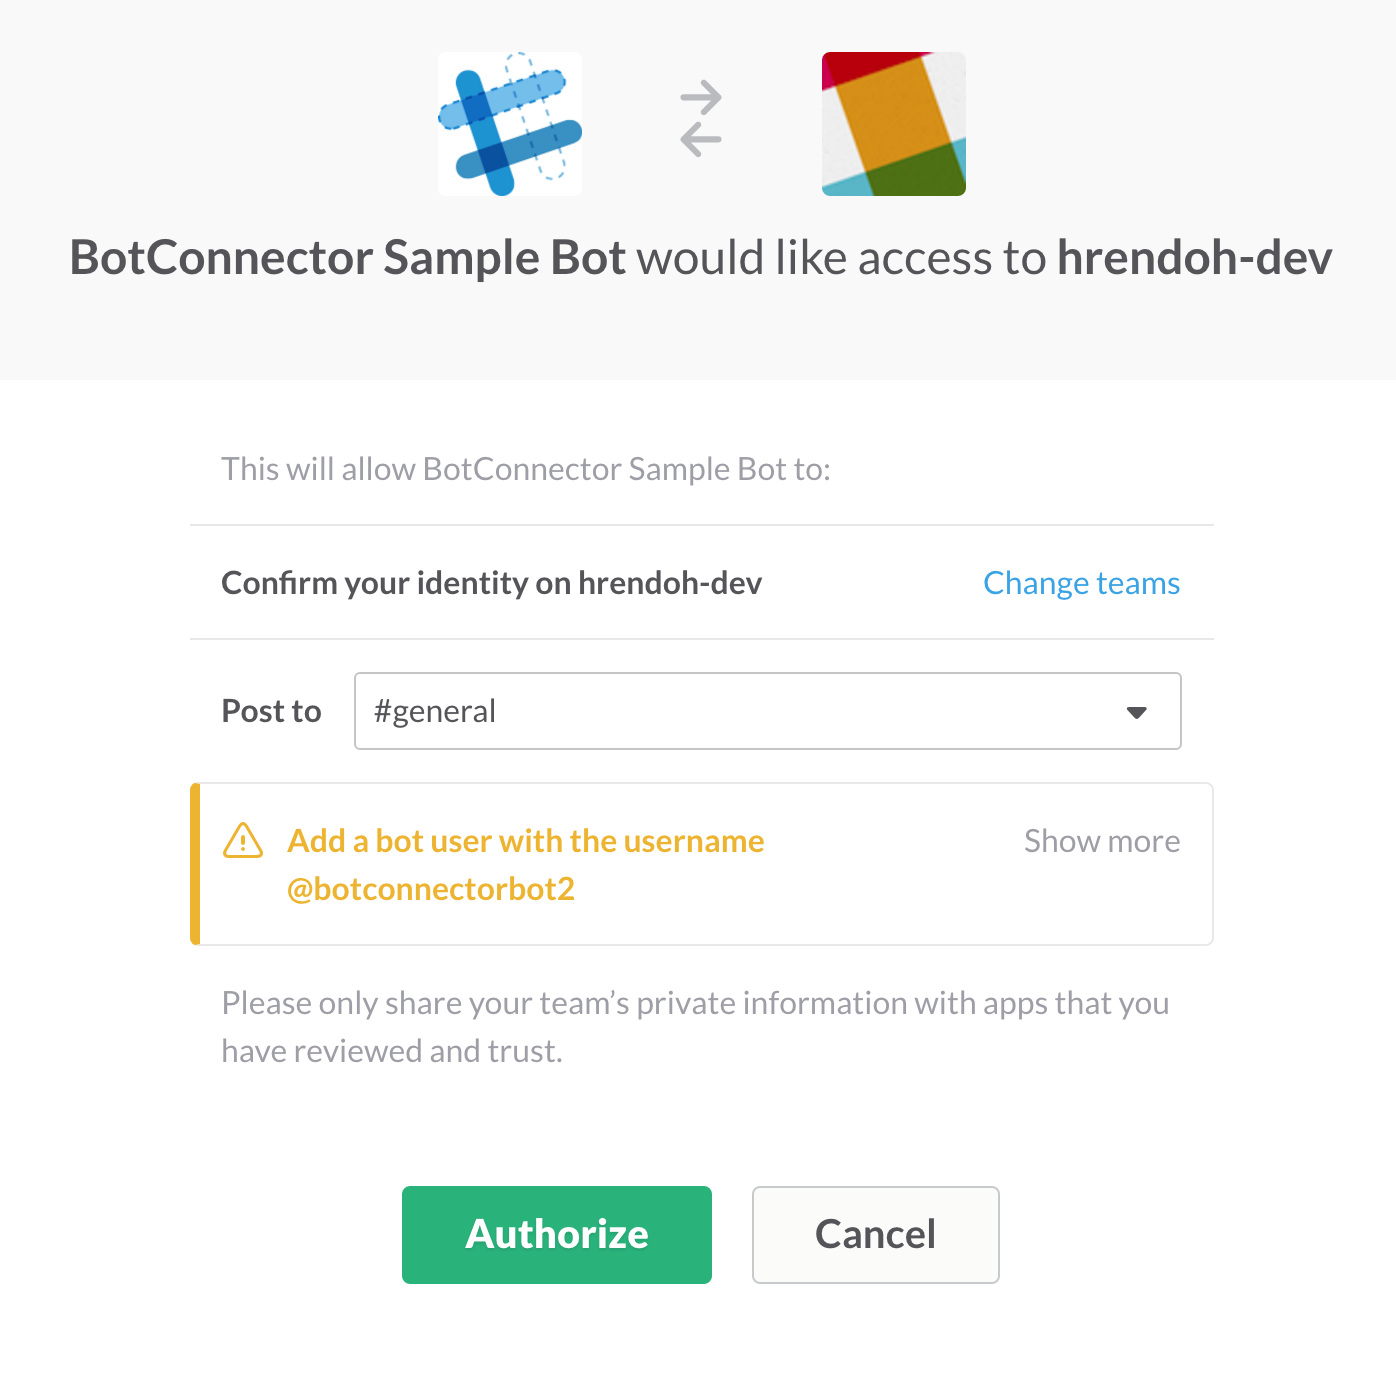 bot-connector-sample-authorize-access-to-my-team